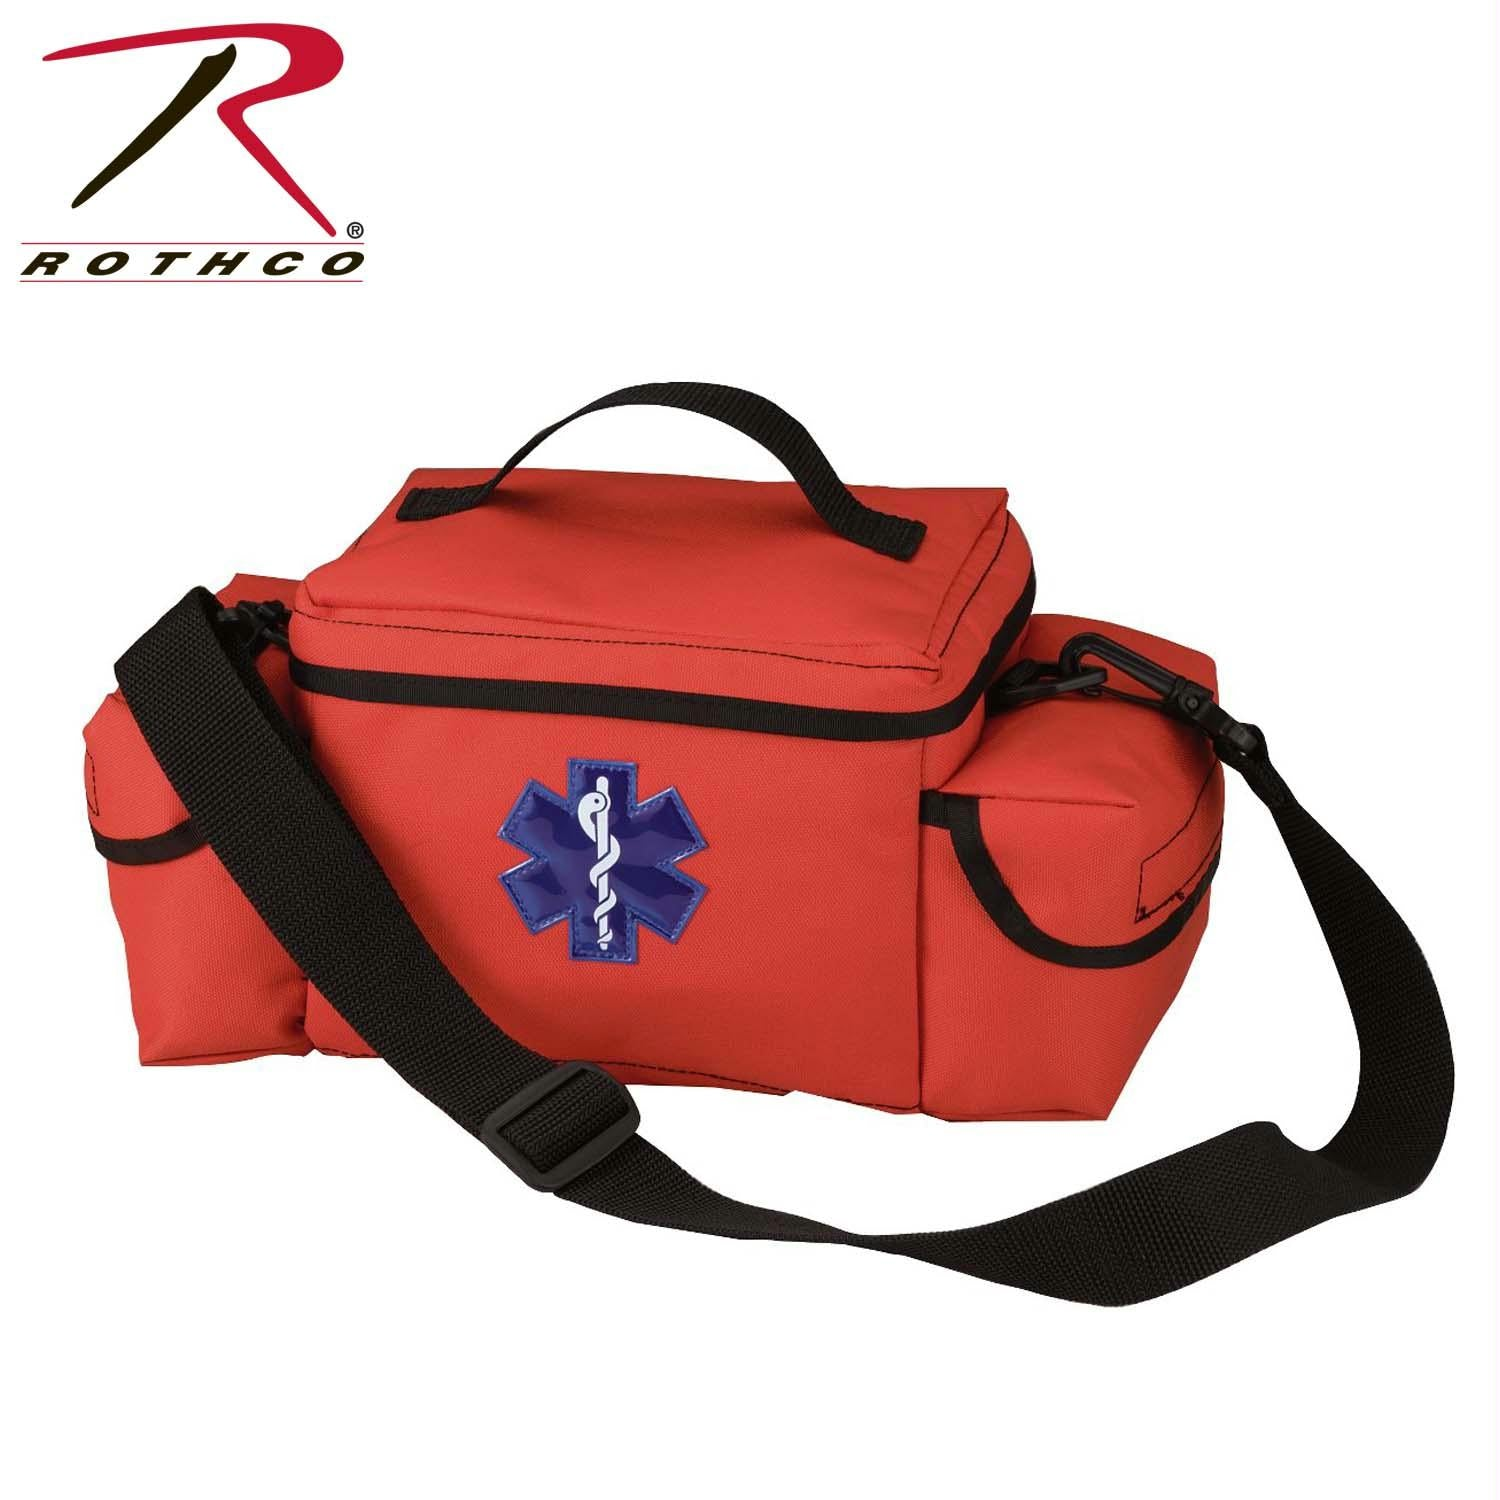 Rothco EMS Rescue Bag - Orange